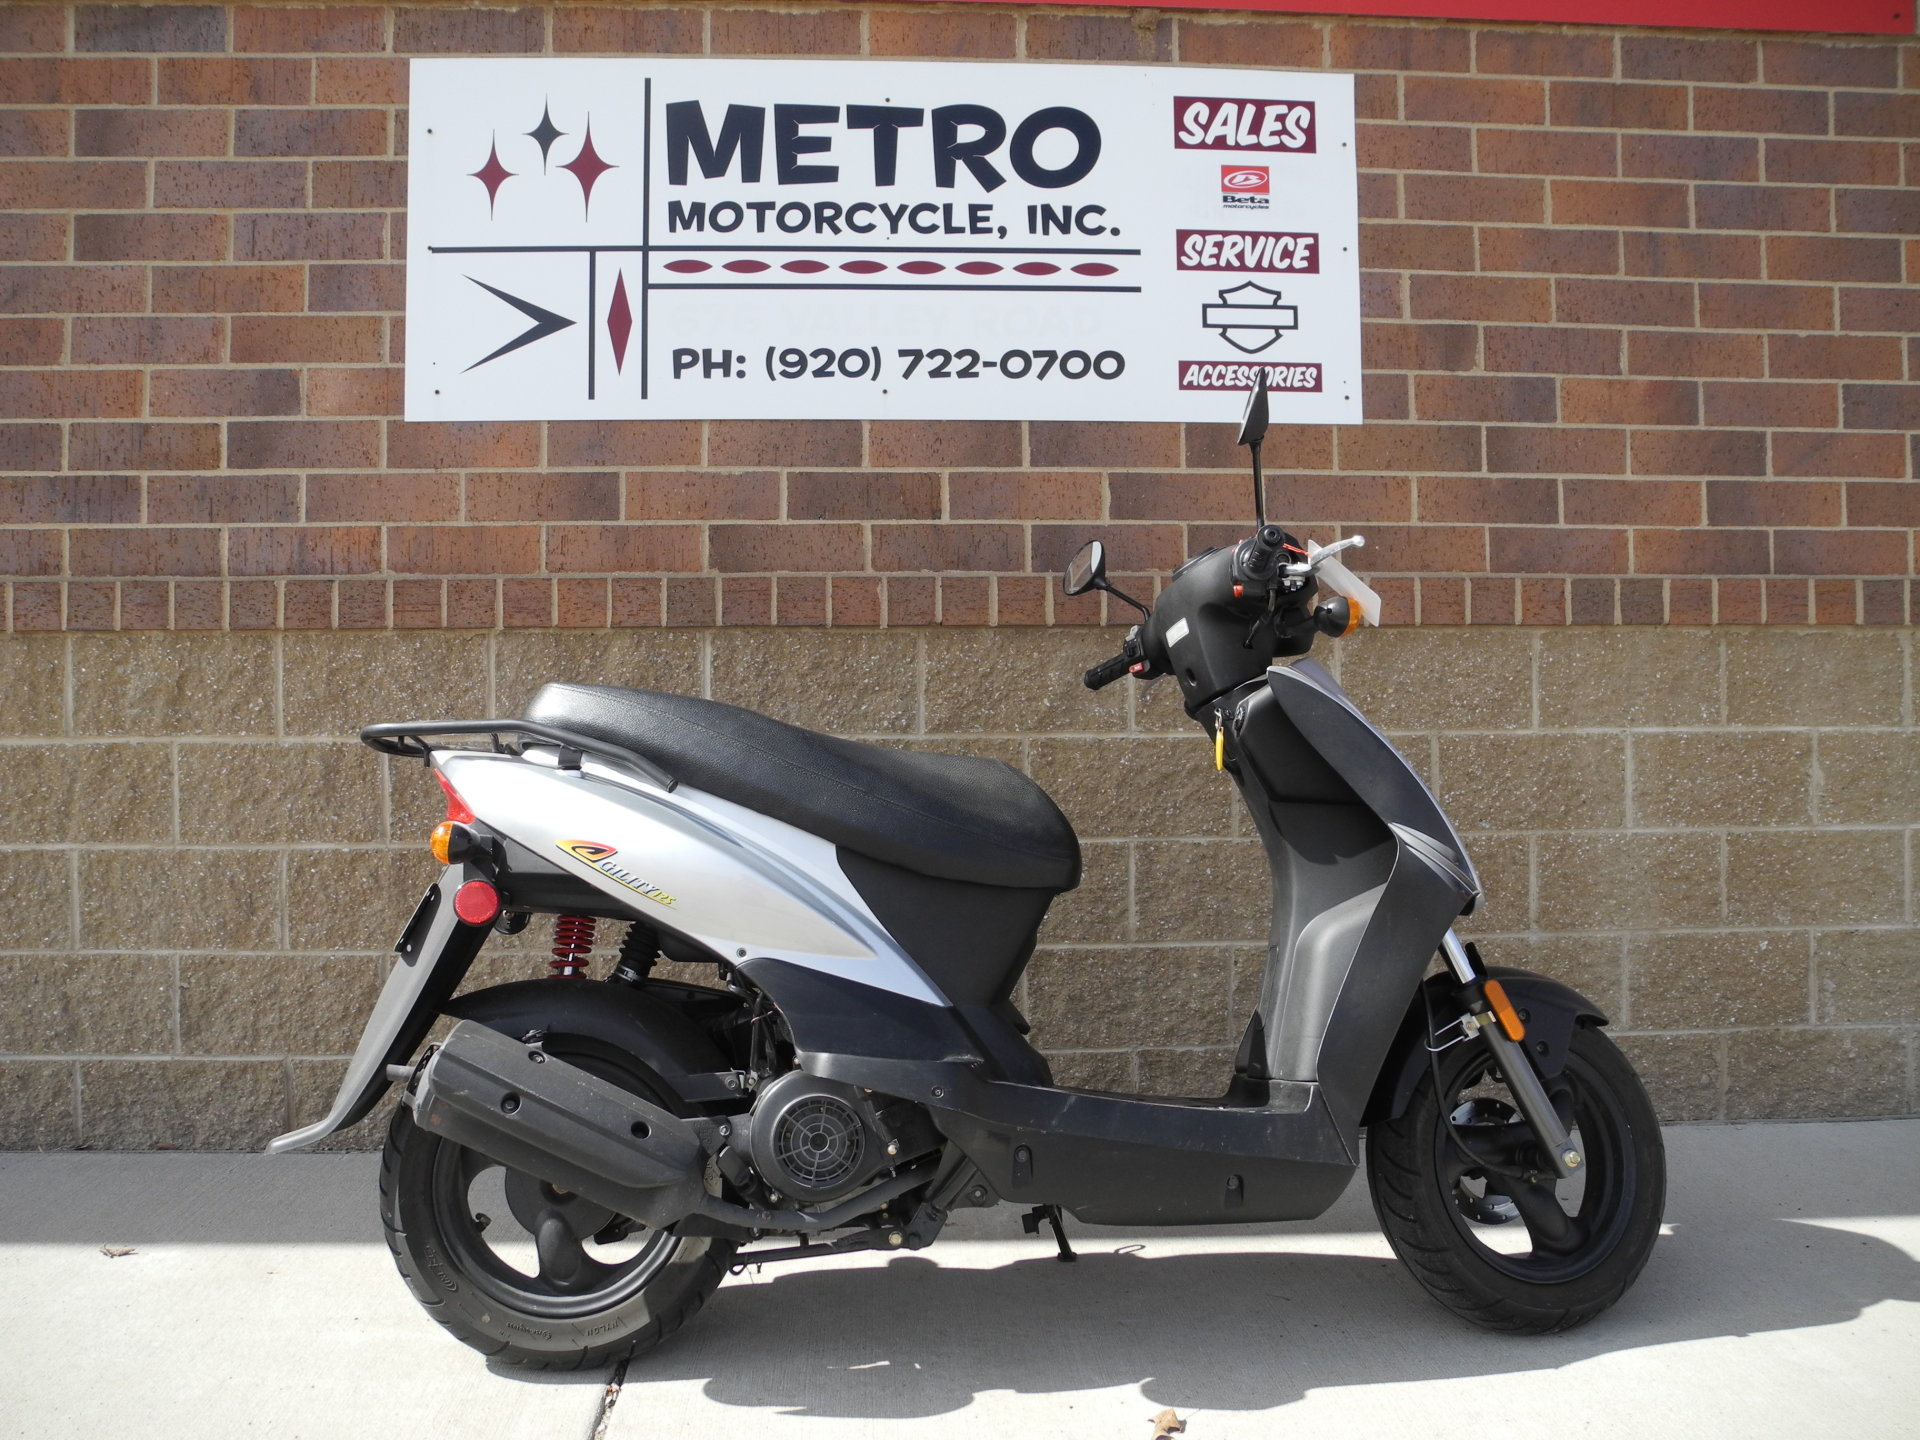 2007 Kymco Agility 125 Scooter